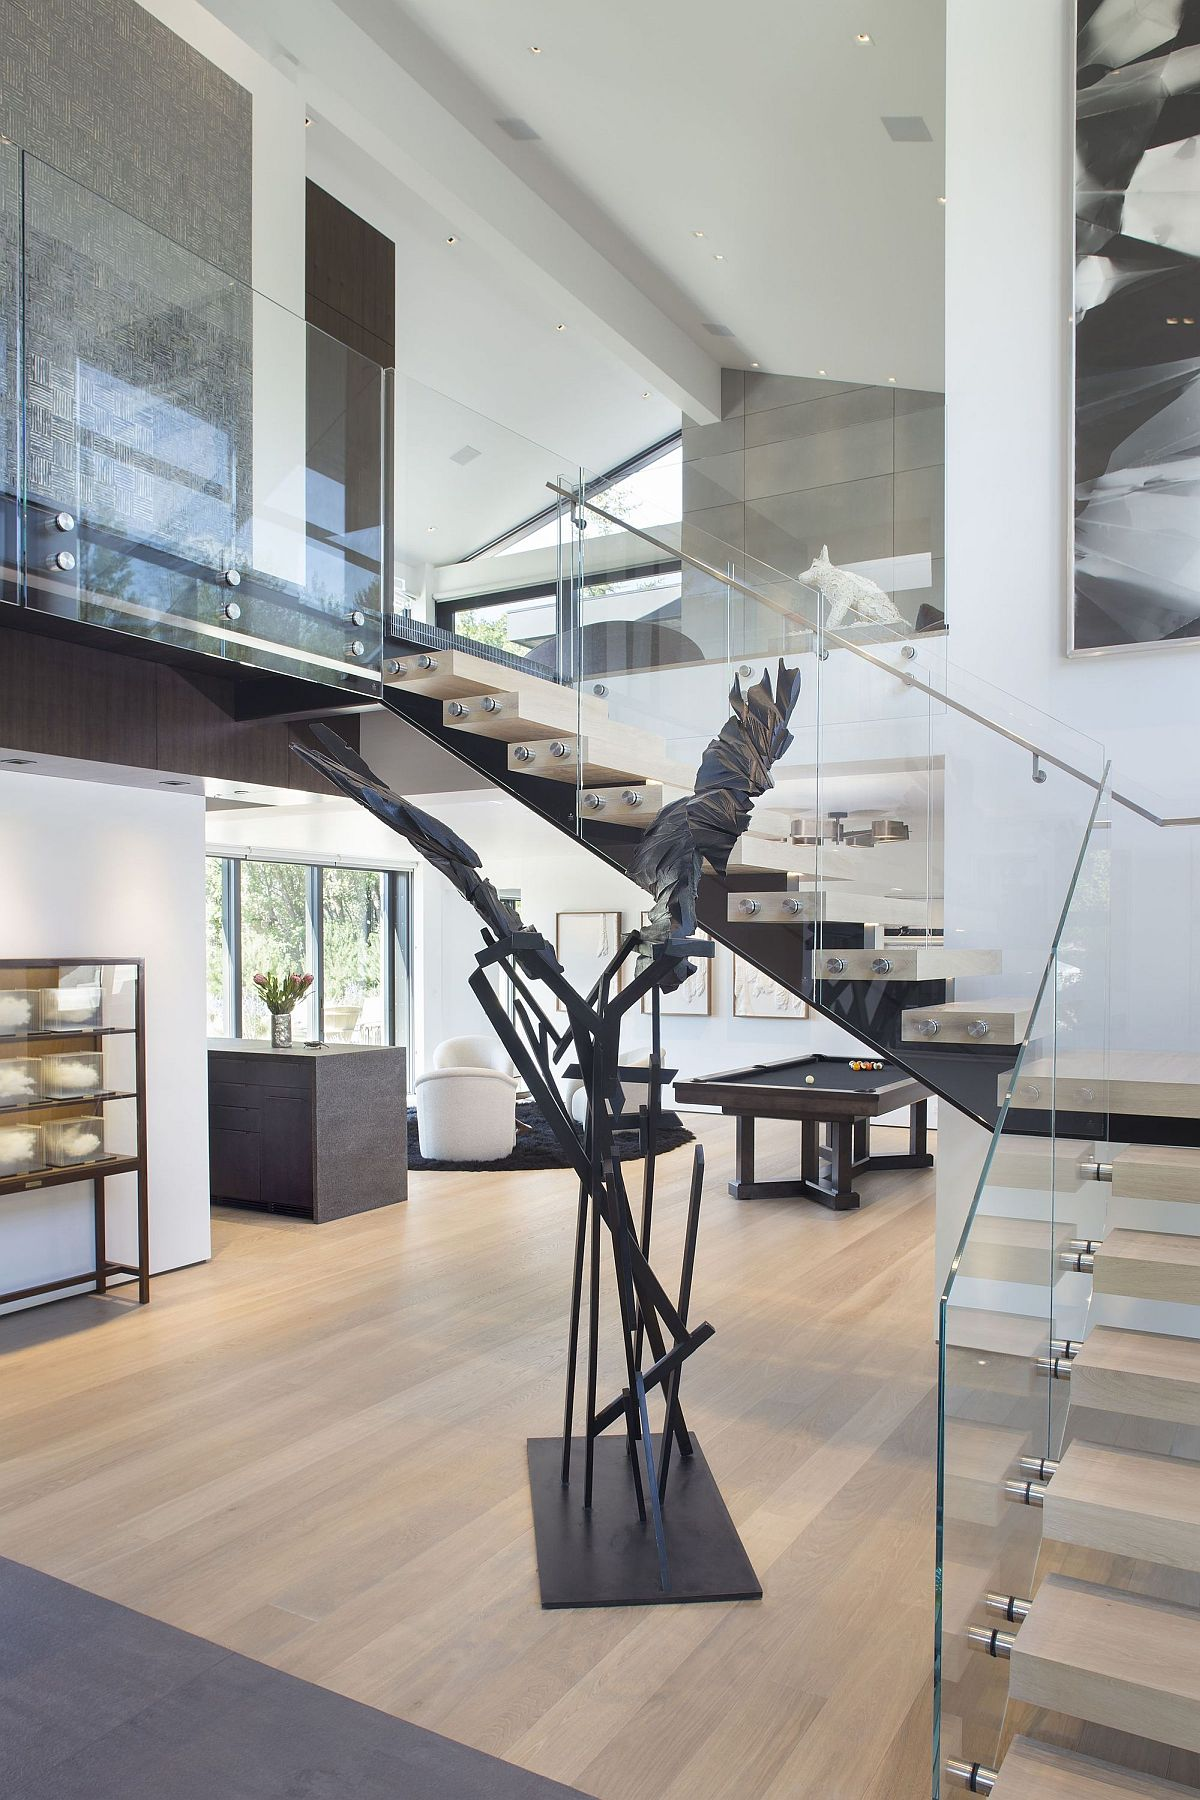 Glass railing for the wooden staircase gives your home a more modern and airy appeal